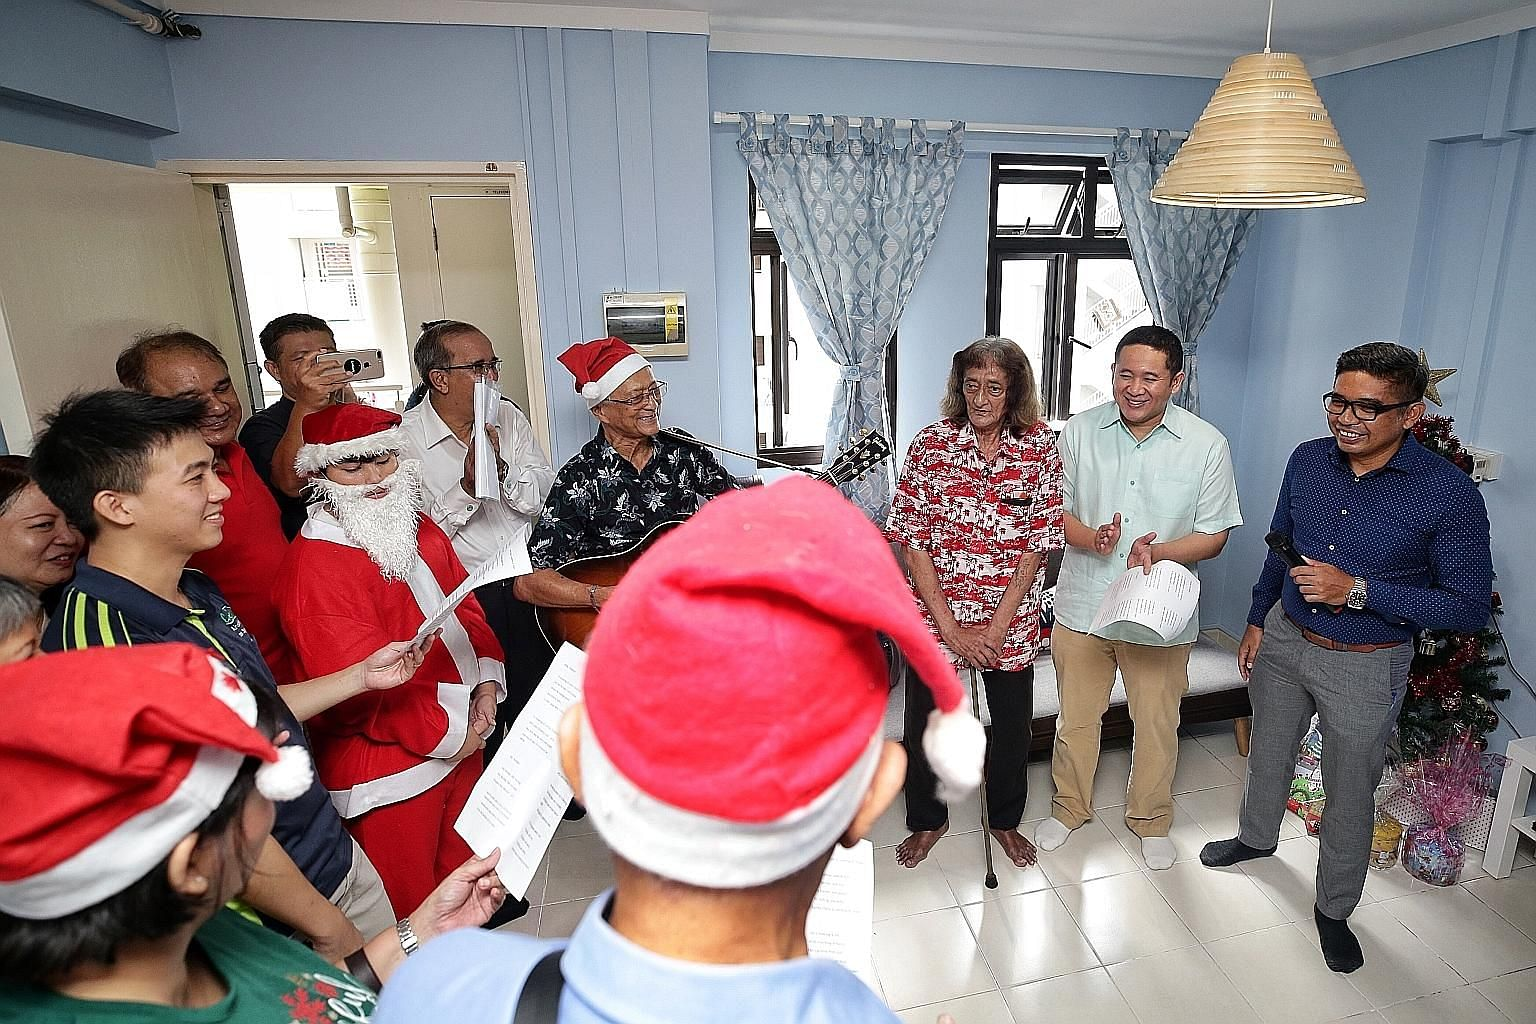 Mr Victor Louis De Foe in his spruced-up home in Woodlands. Volunteers from Jamiyah Halfway House painted the flat and installed new appliances. They also got him a Christmas tree and had it decorated. Mr De Foe (third from right) with volunteers fro